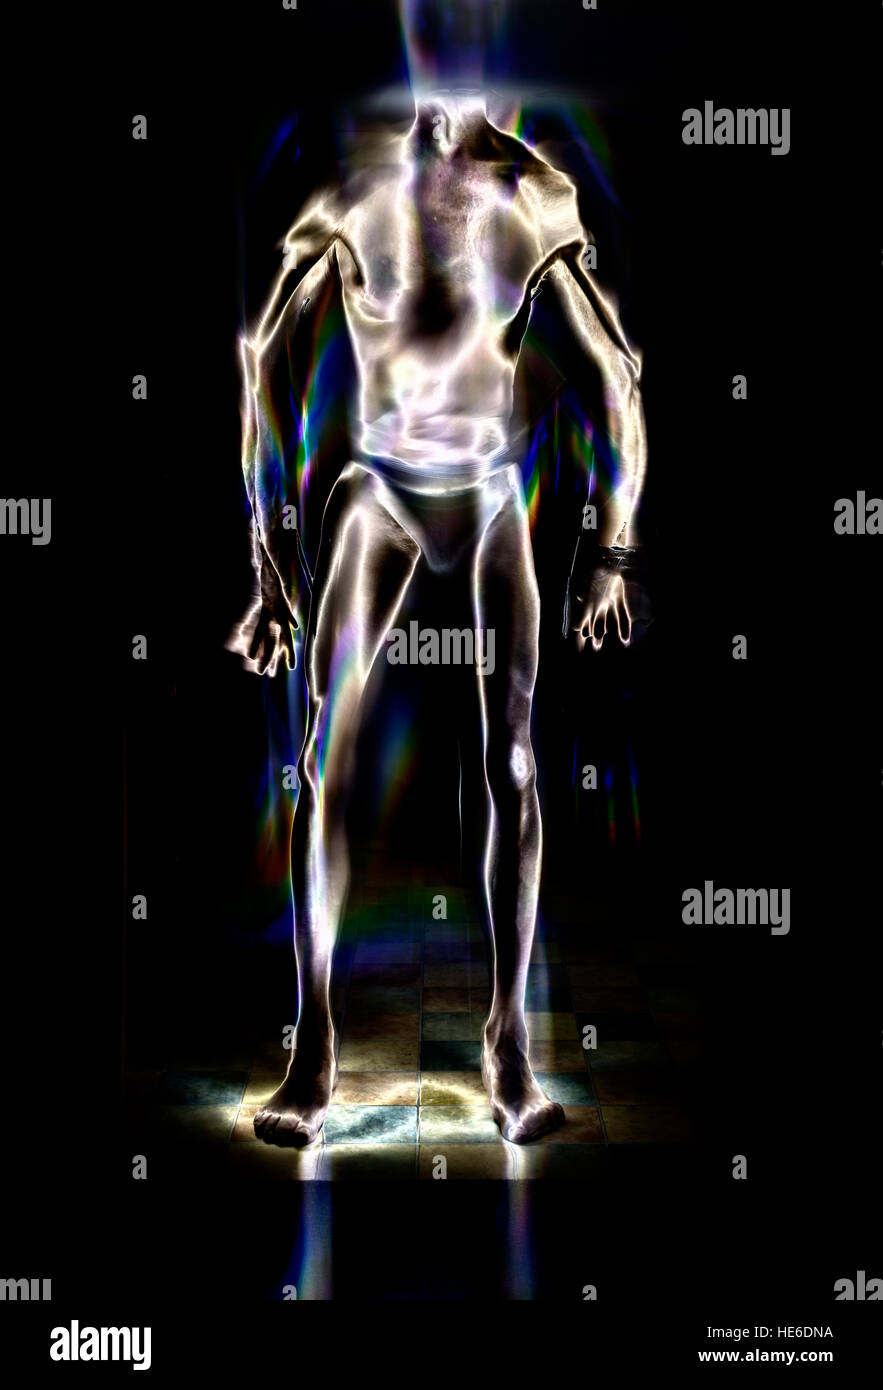 A surreal image of a alien like man - Stock Image